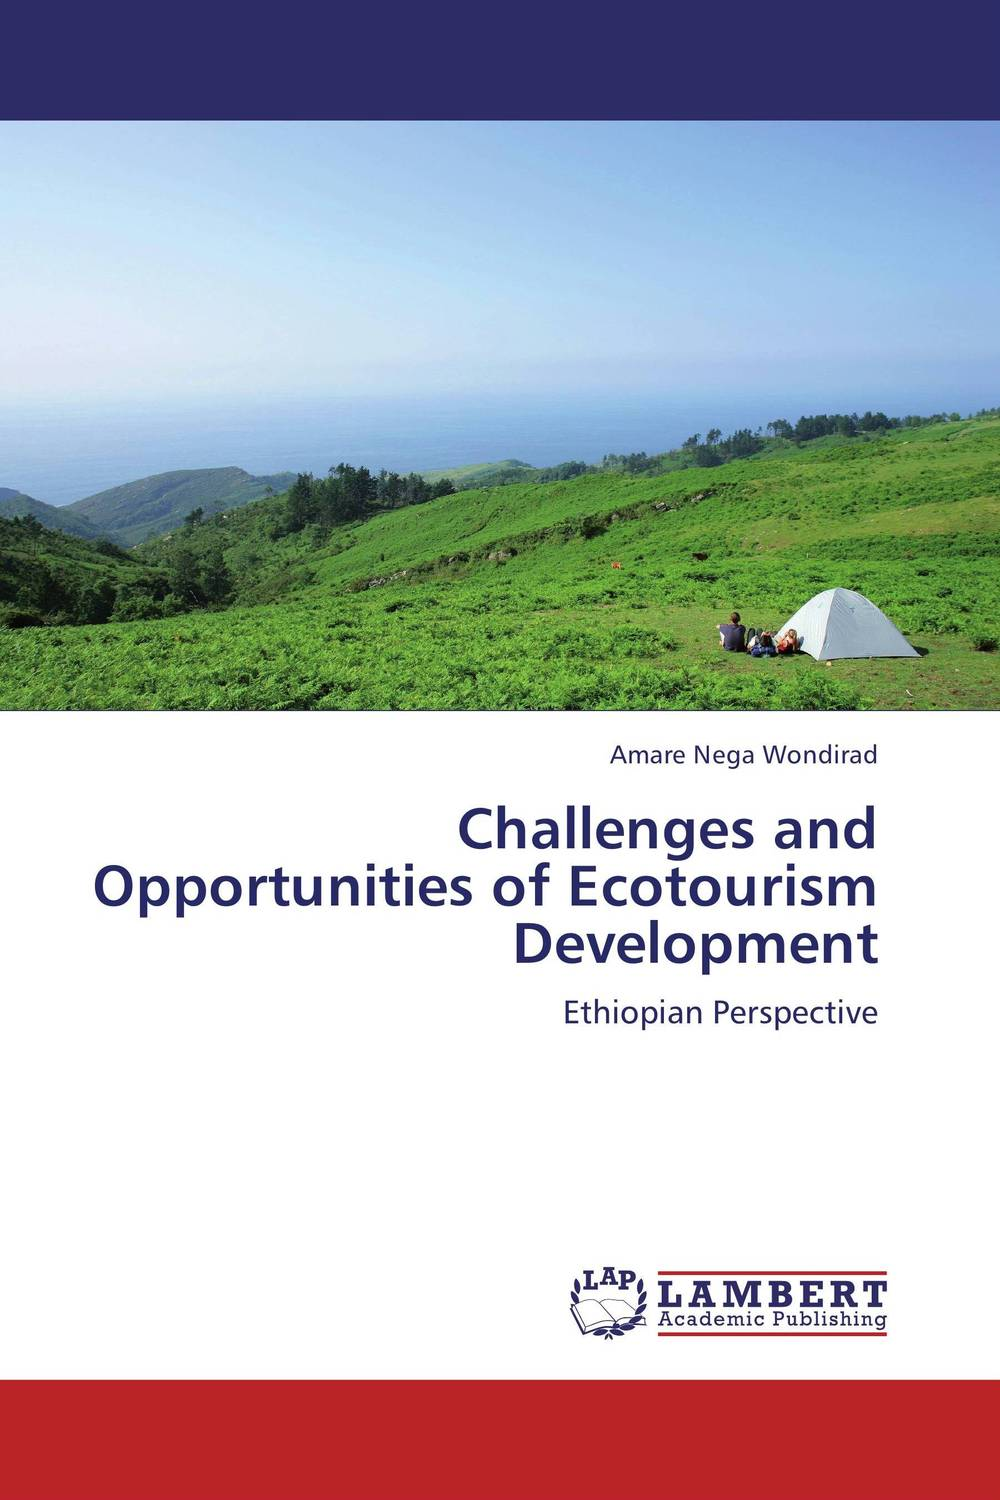 Challenges and Opportunities of Ecotourism Development challenges and opportunities of indigenous church leaders in uganda